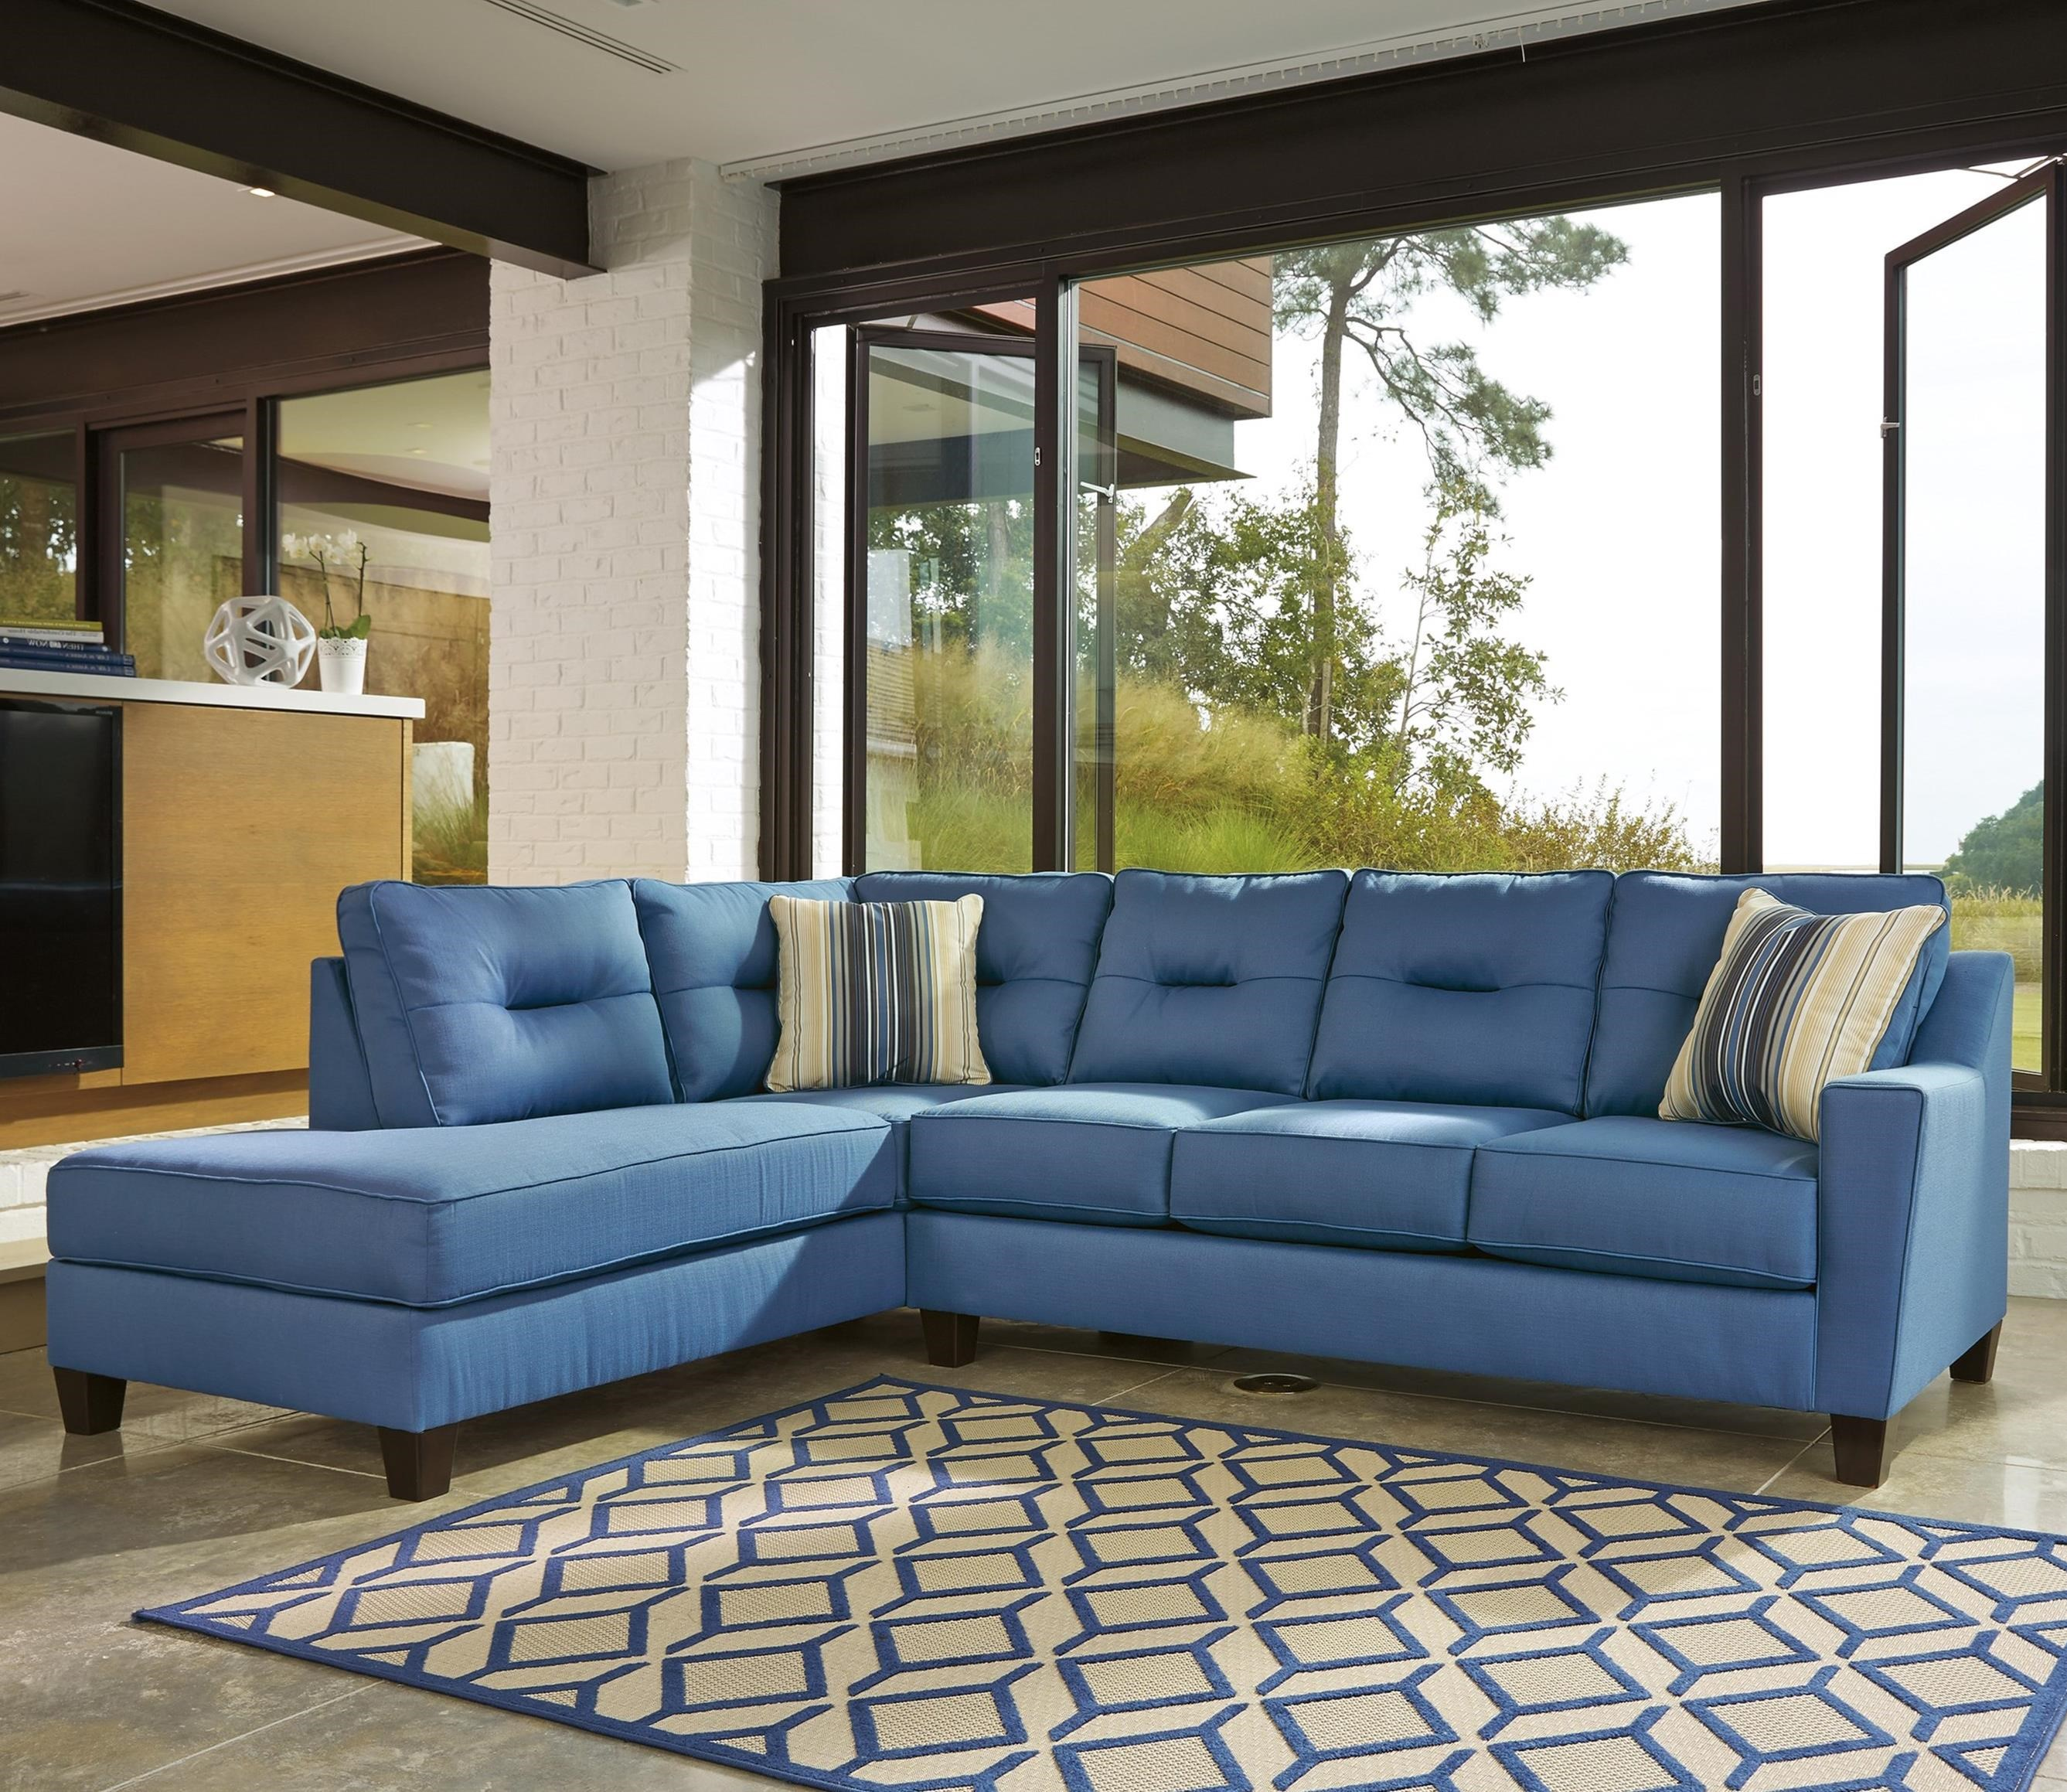 Benchcraft Kirwin Nuvella Sectional with Chaise - Item Number 9960316+67 : left chaise sectional - Sectionals, Sofas & Couches